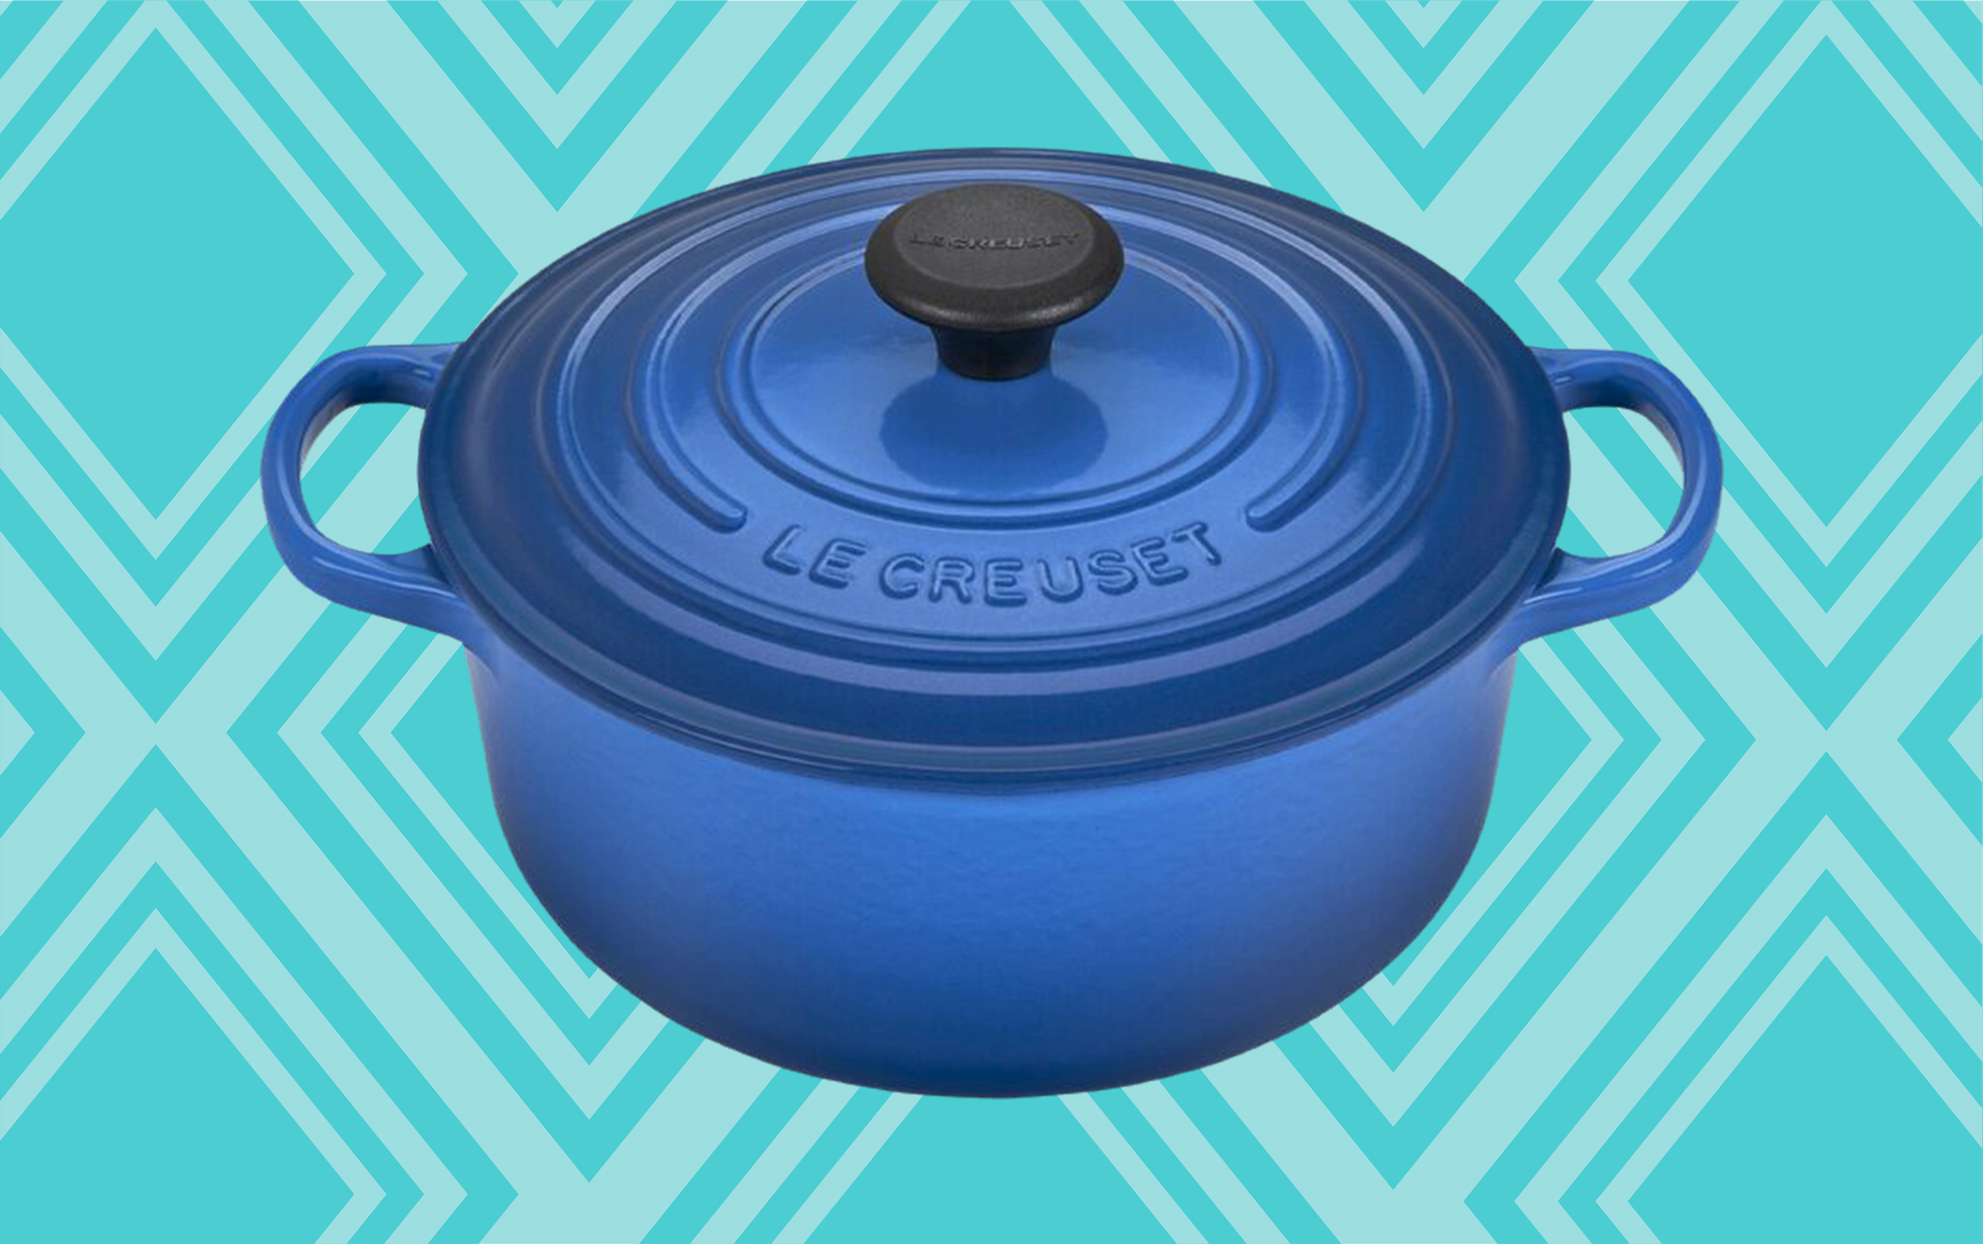 Wayfair blue Le Creuset pan with lid on a teal background